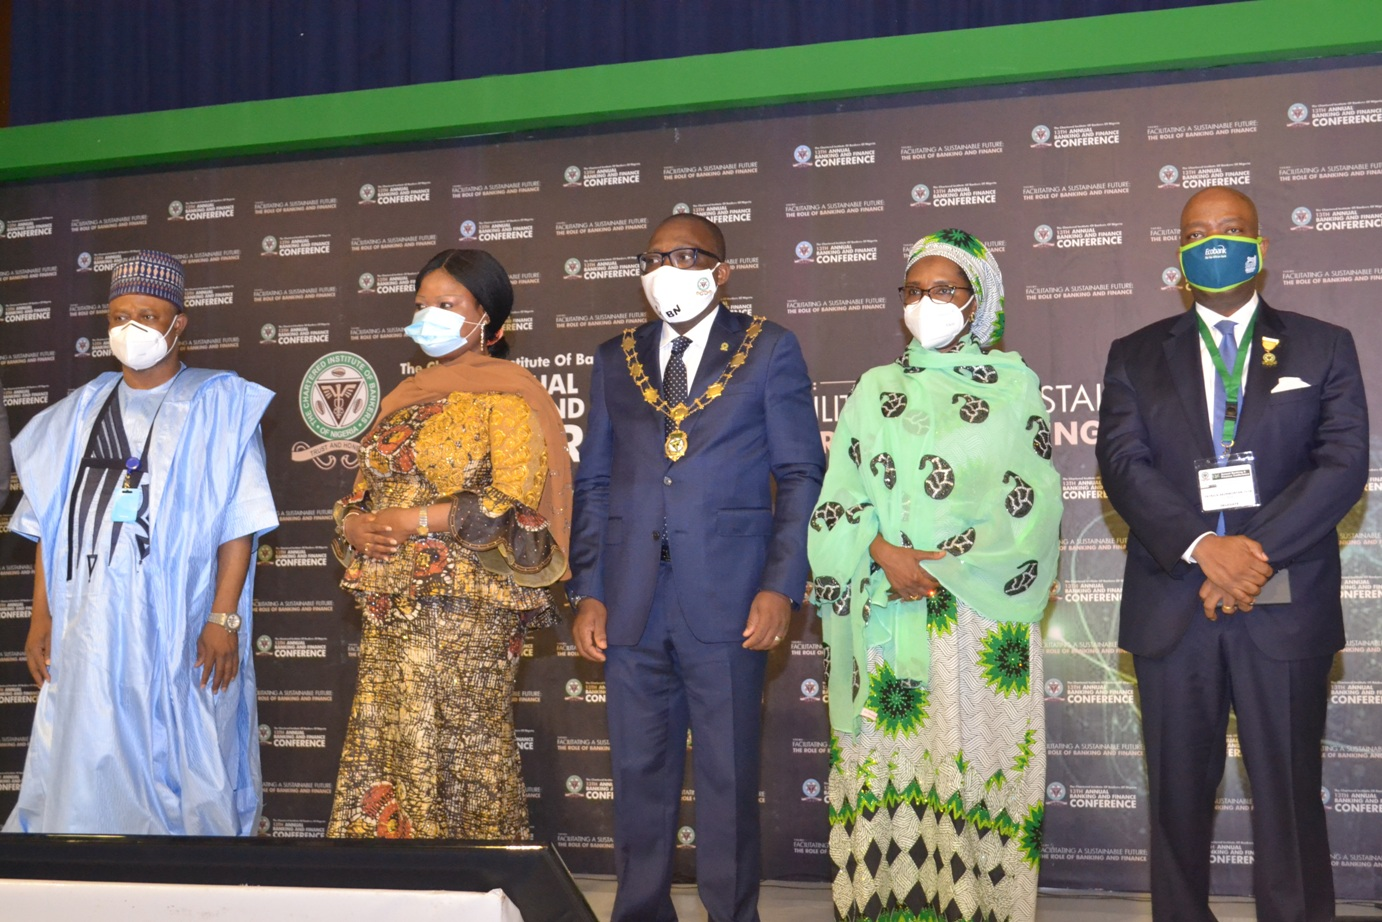 R-L: Mr. Godwin Emefiele, Governor, Central Bank of Nigeria, Dr. Segun Aina, Past resident, CIBN; Mr. Bayo Olugbemi, President/Chairman of Council, The Chartered Institute of Bankers of Nigeria and Mrs. Zainab Ahmed, Honourable Minister of Finance, Budget and National Planning, Federal Republic of Nigeria, CIBN; during the hybrid 13th Annual Banking and Finance Conference held in Transcorp Hilton Hotel, Abuja.